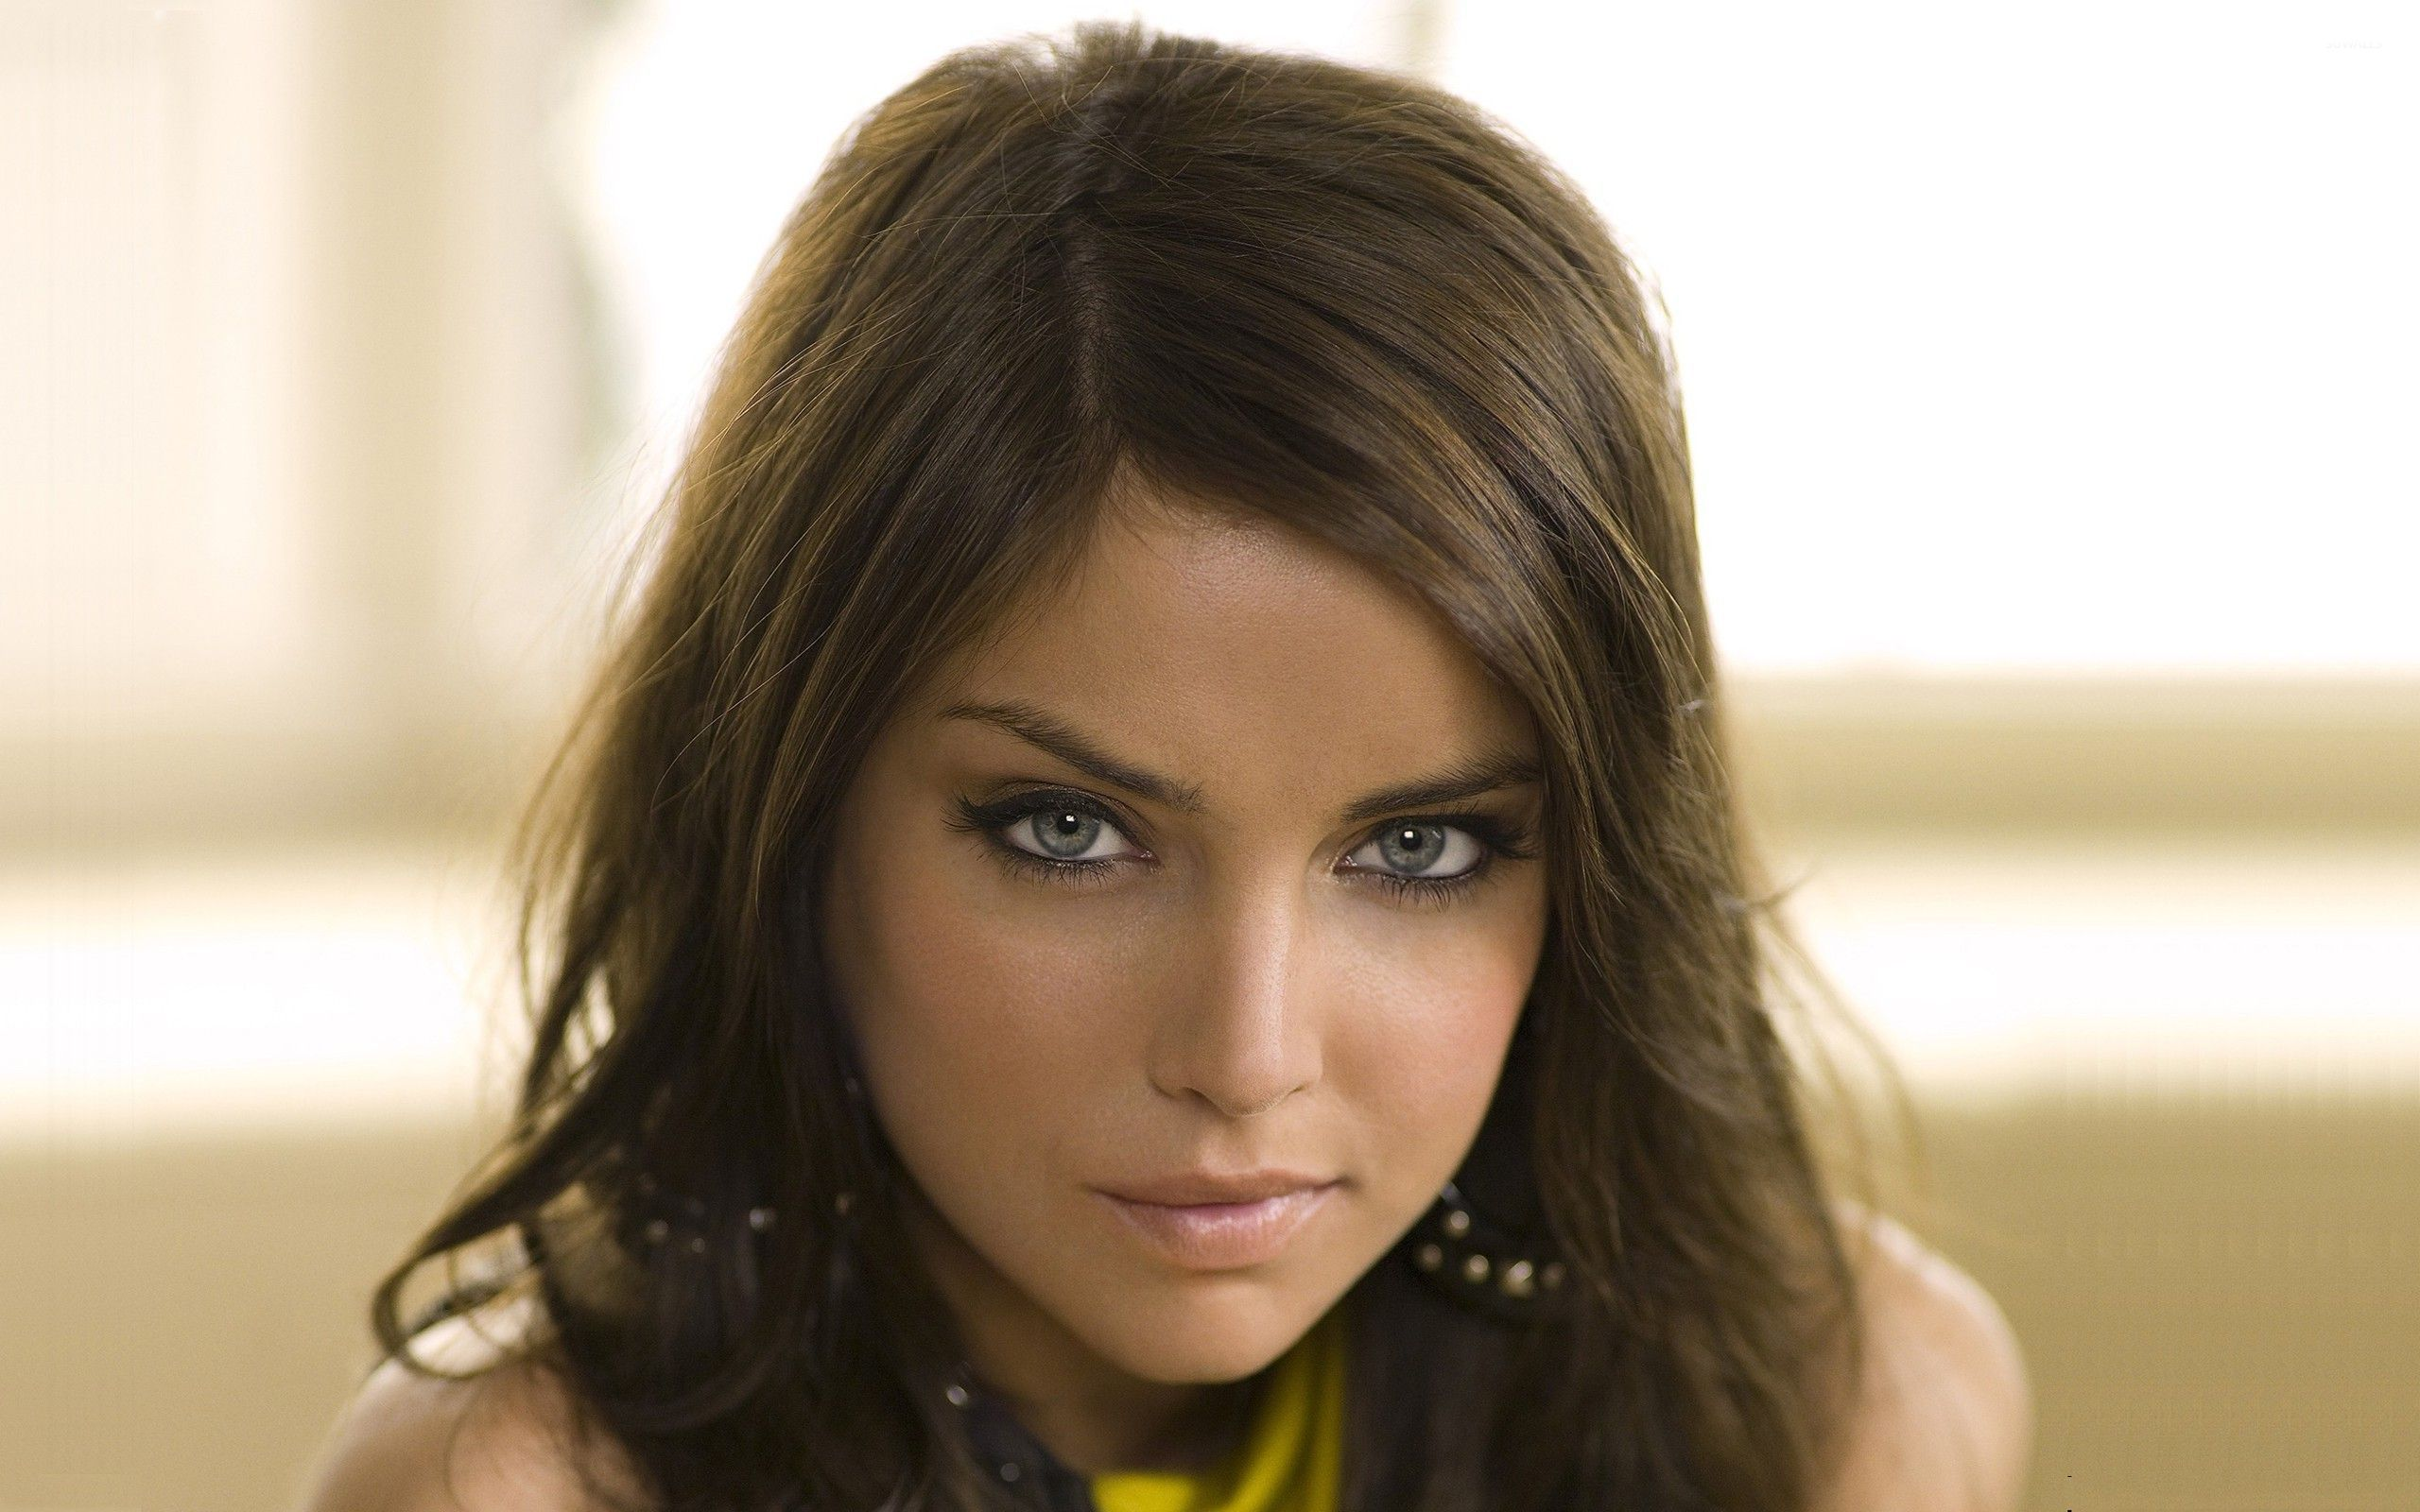 2560x1600 - Jessica Stroup Wallpapers 17